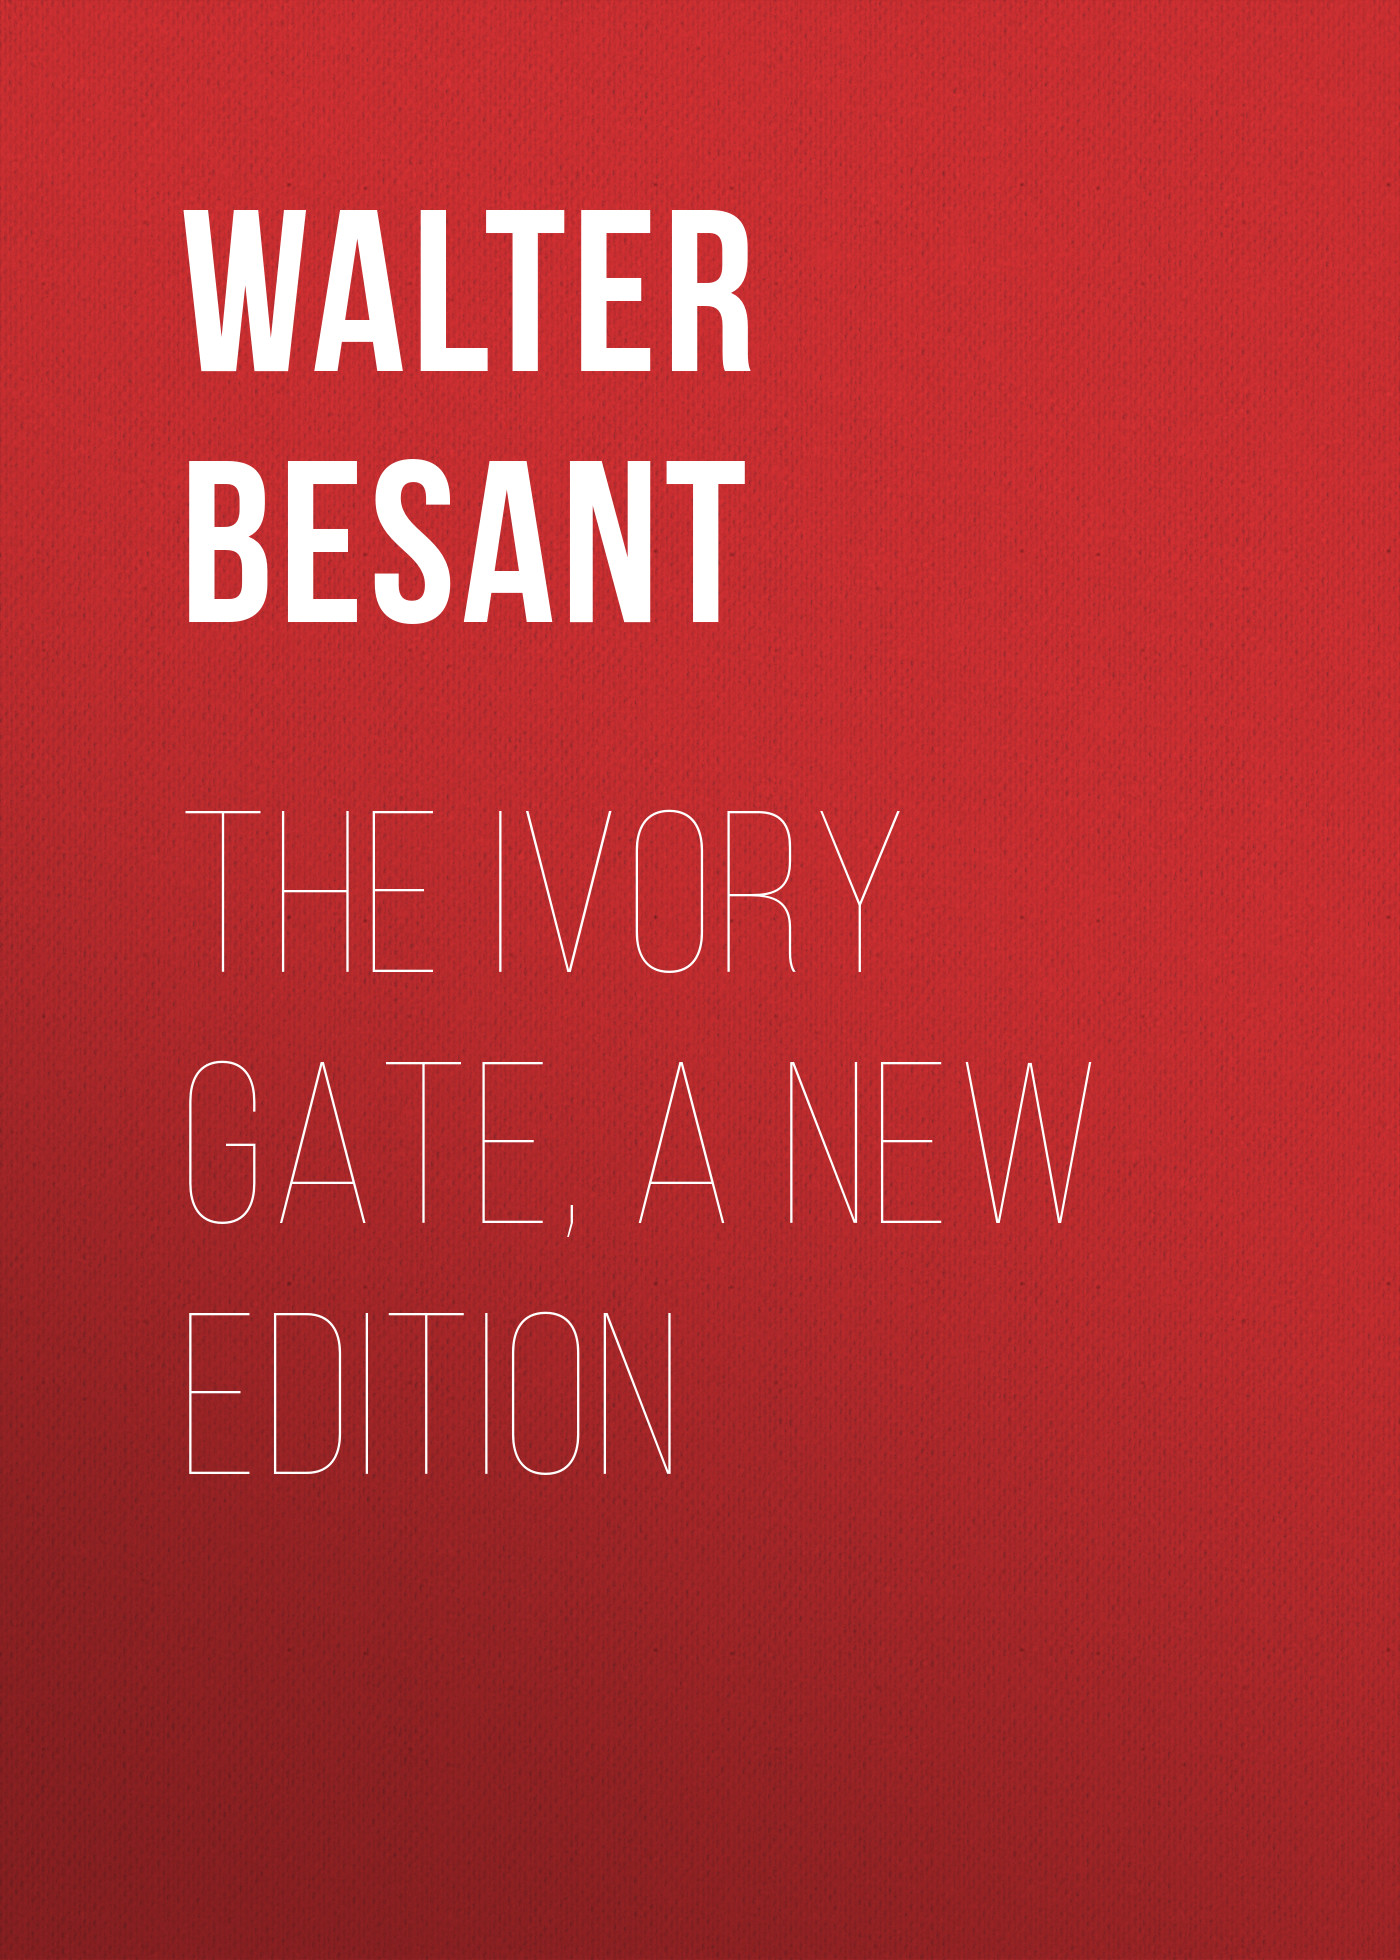 Walter Besant The Ivory Gate, a new edition walter besant london